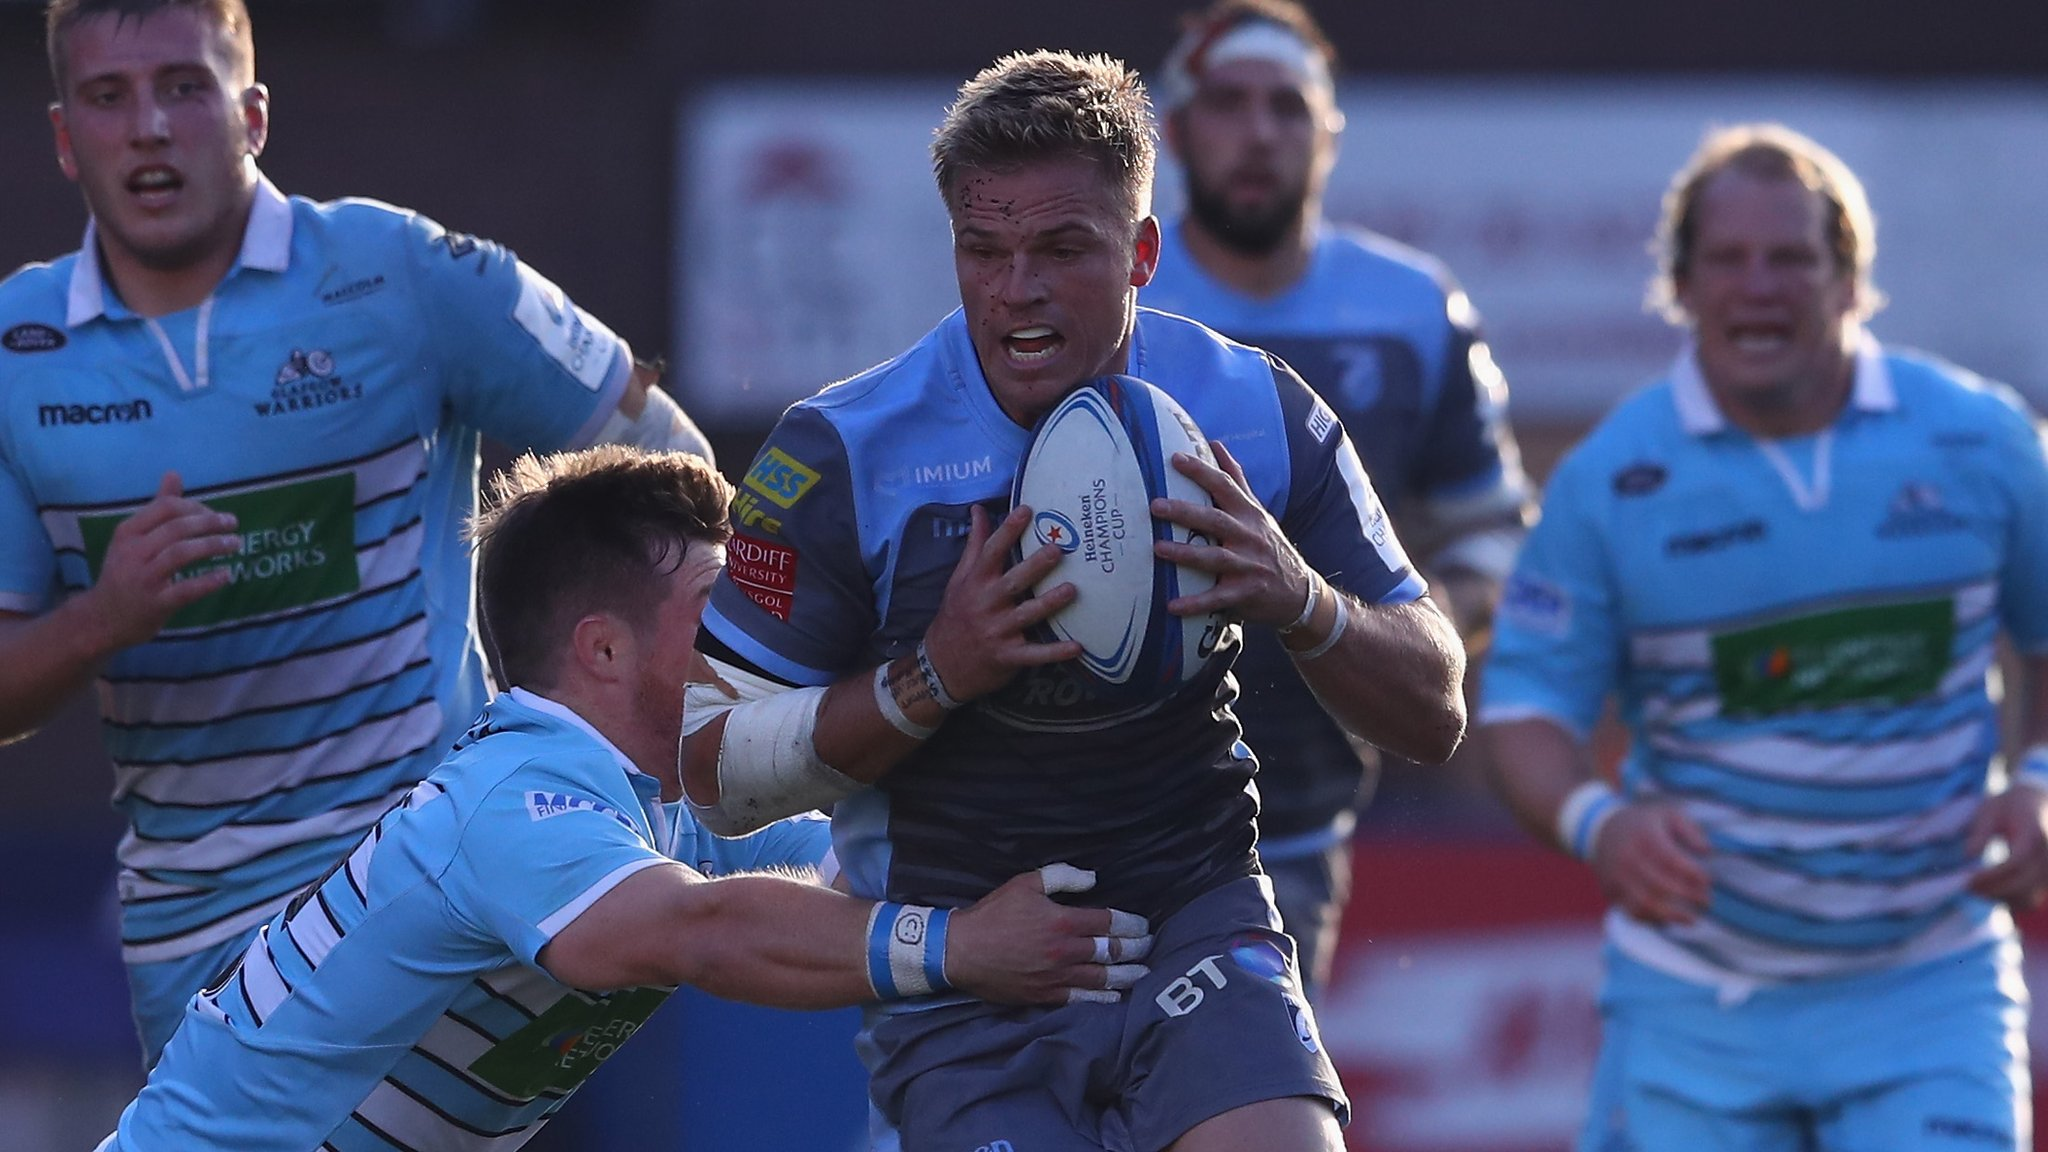 Cardiff-Glasgow Champions Cup kit clash a 'disgrace'